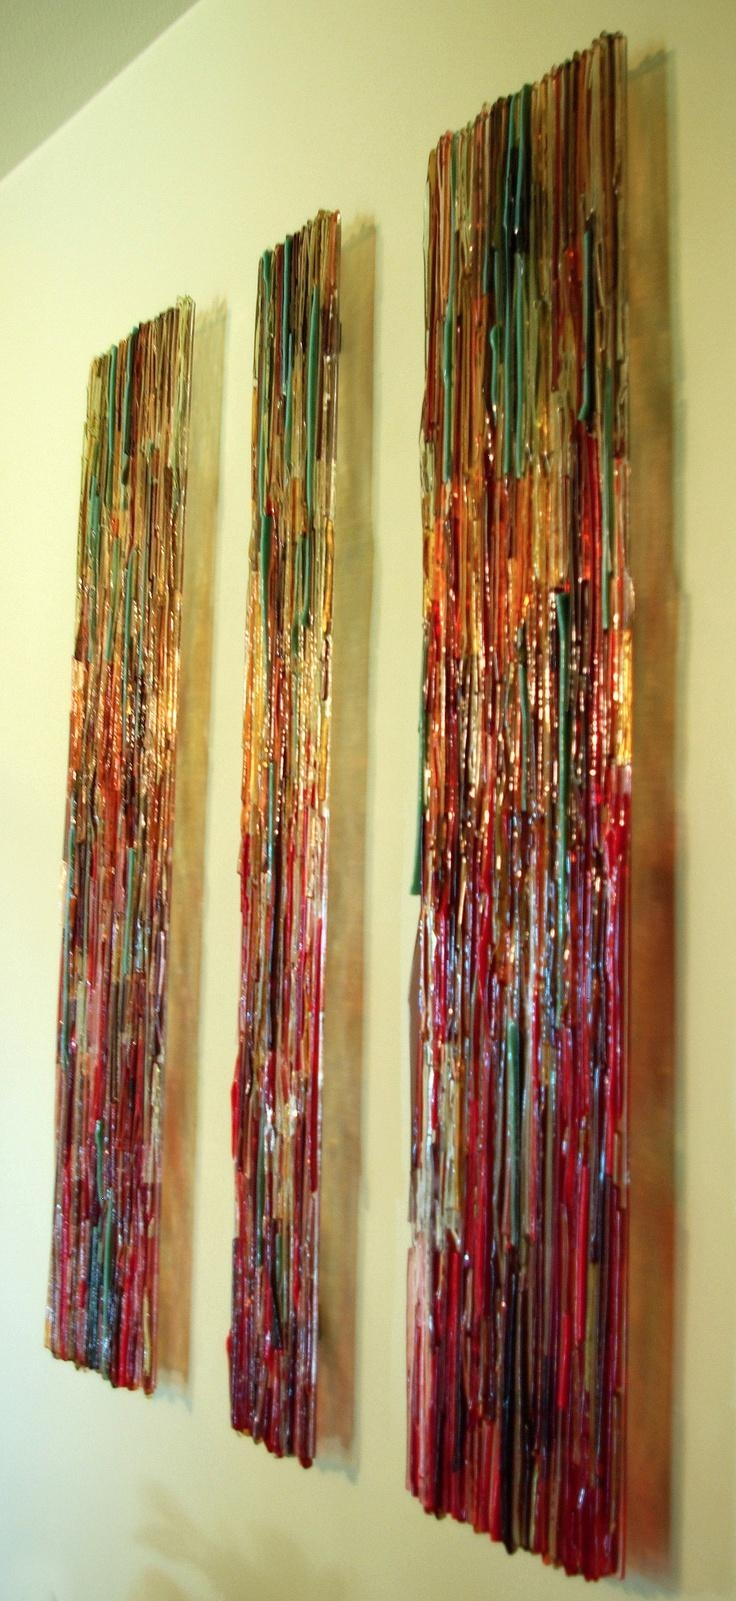 25+ Best Glass Wall Art Ideas On Pinterest | Glass Art, Fused Intended For Fused Glass Wall Art Hanging (View 3 of 20)